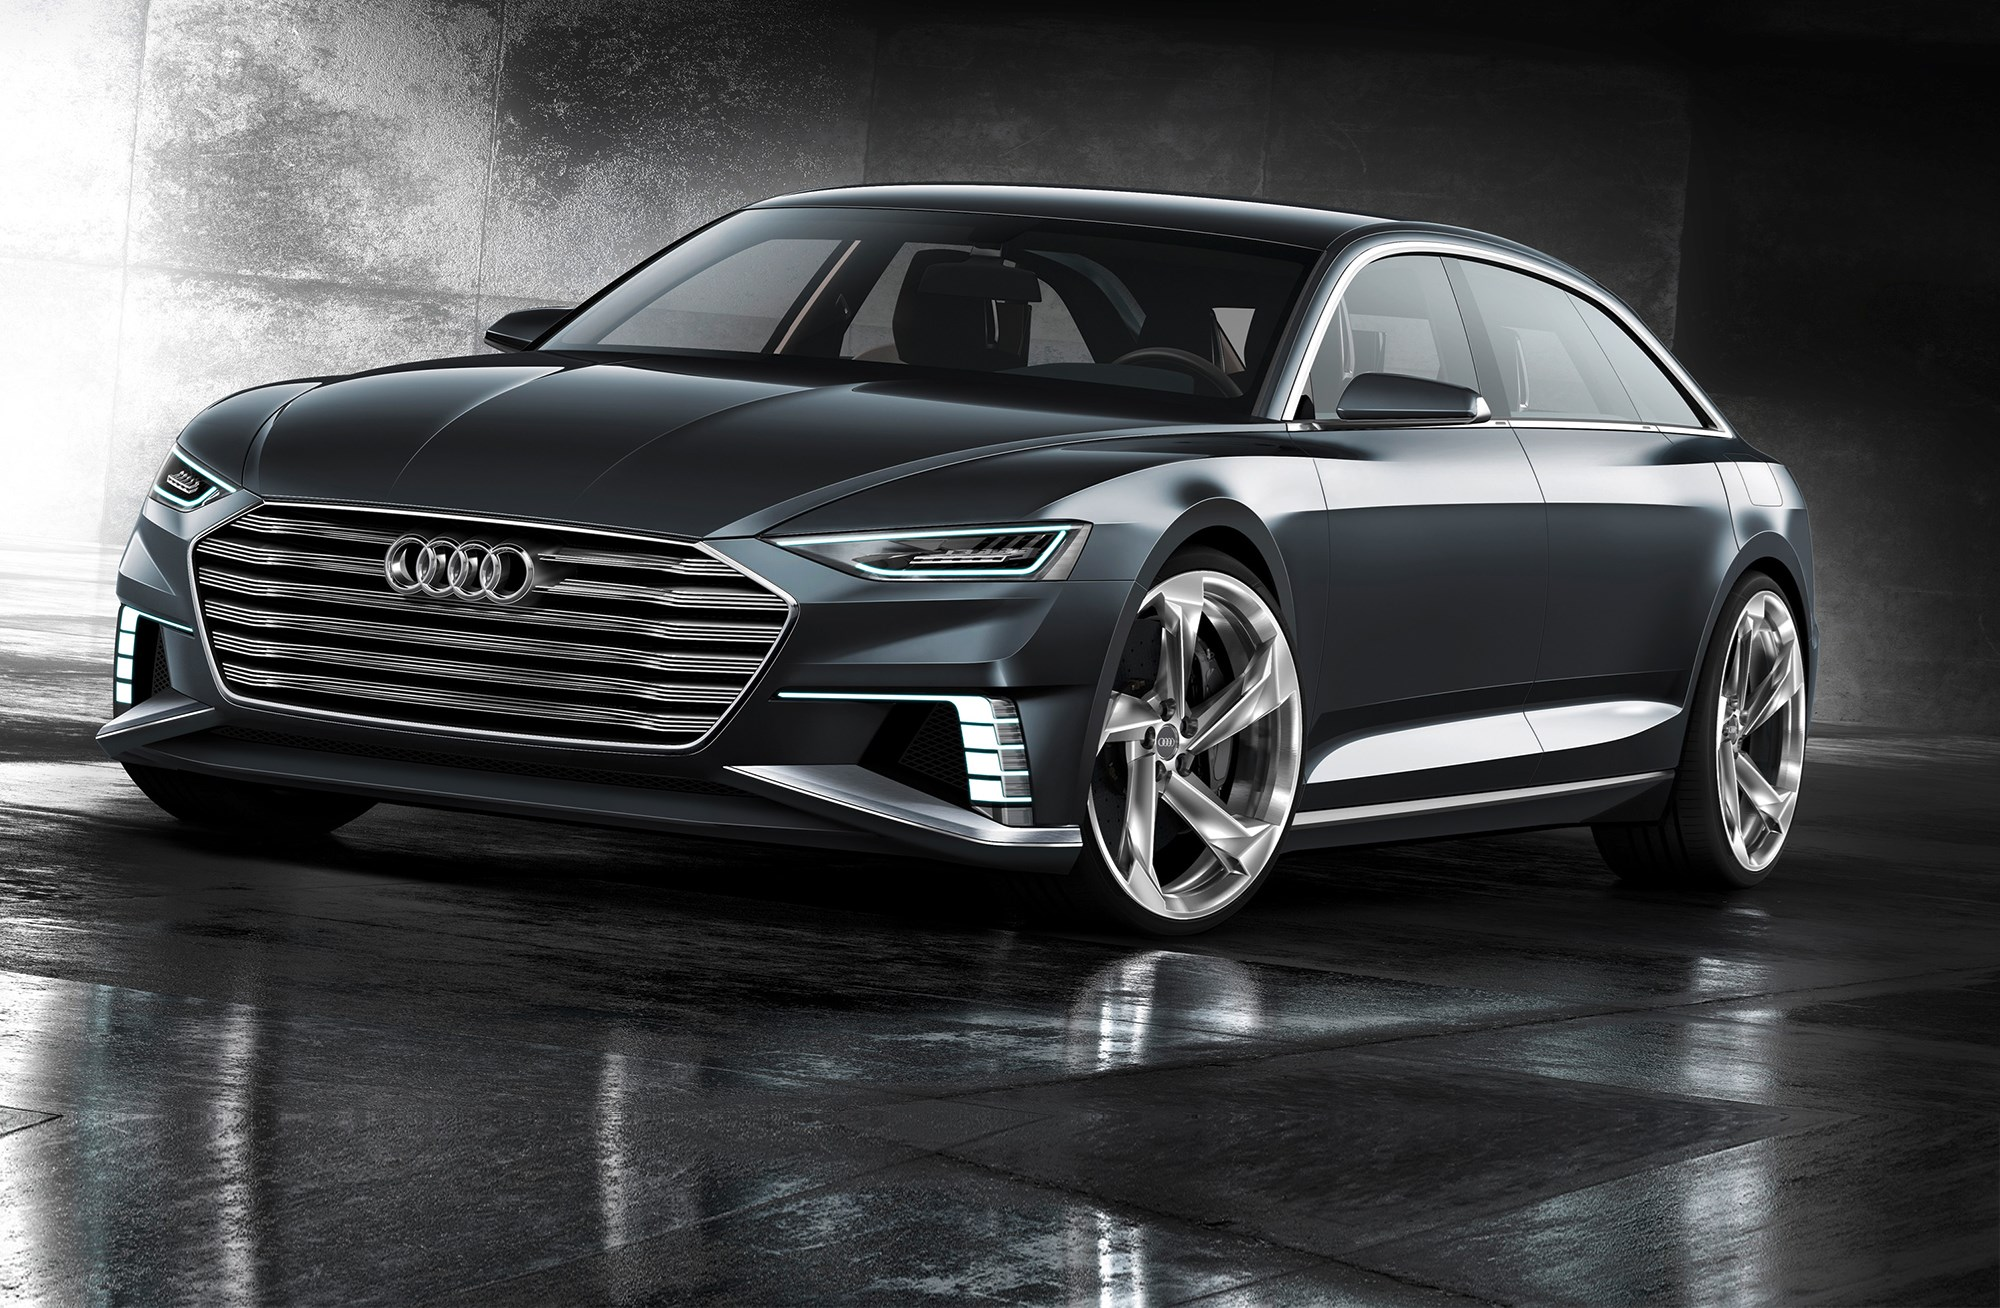 Audi Prologue Avant Concept Want More Doors With That By - Audi car details and price